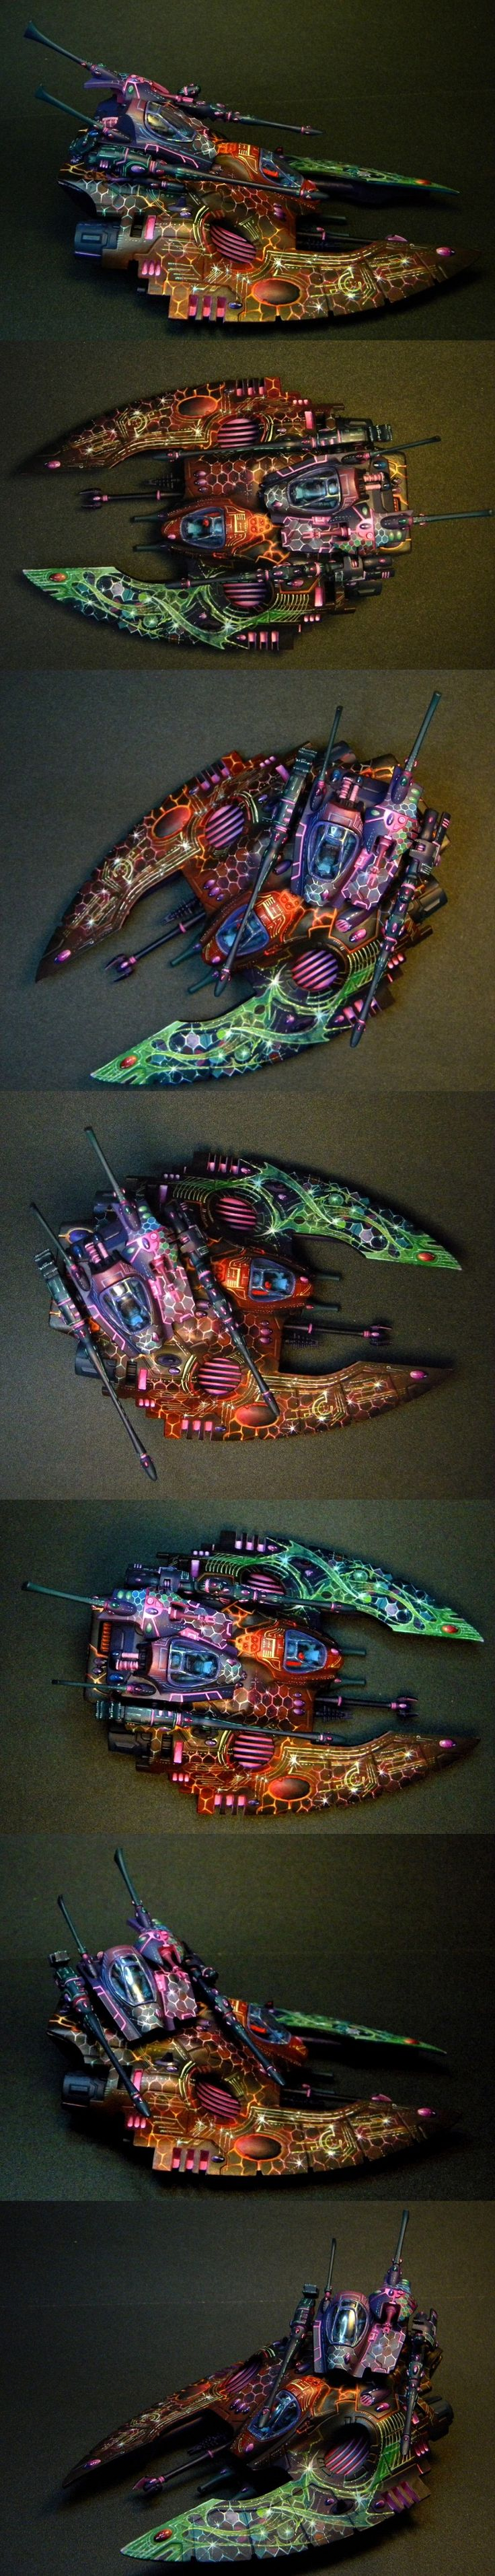 40k - Eldar Falcon - On the topic of ridonculous free hands.